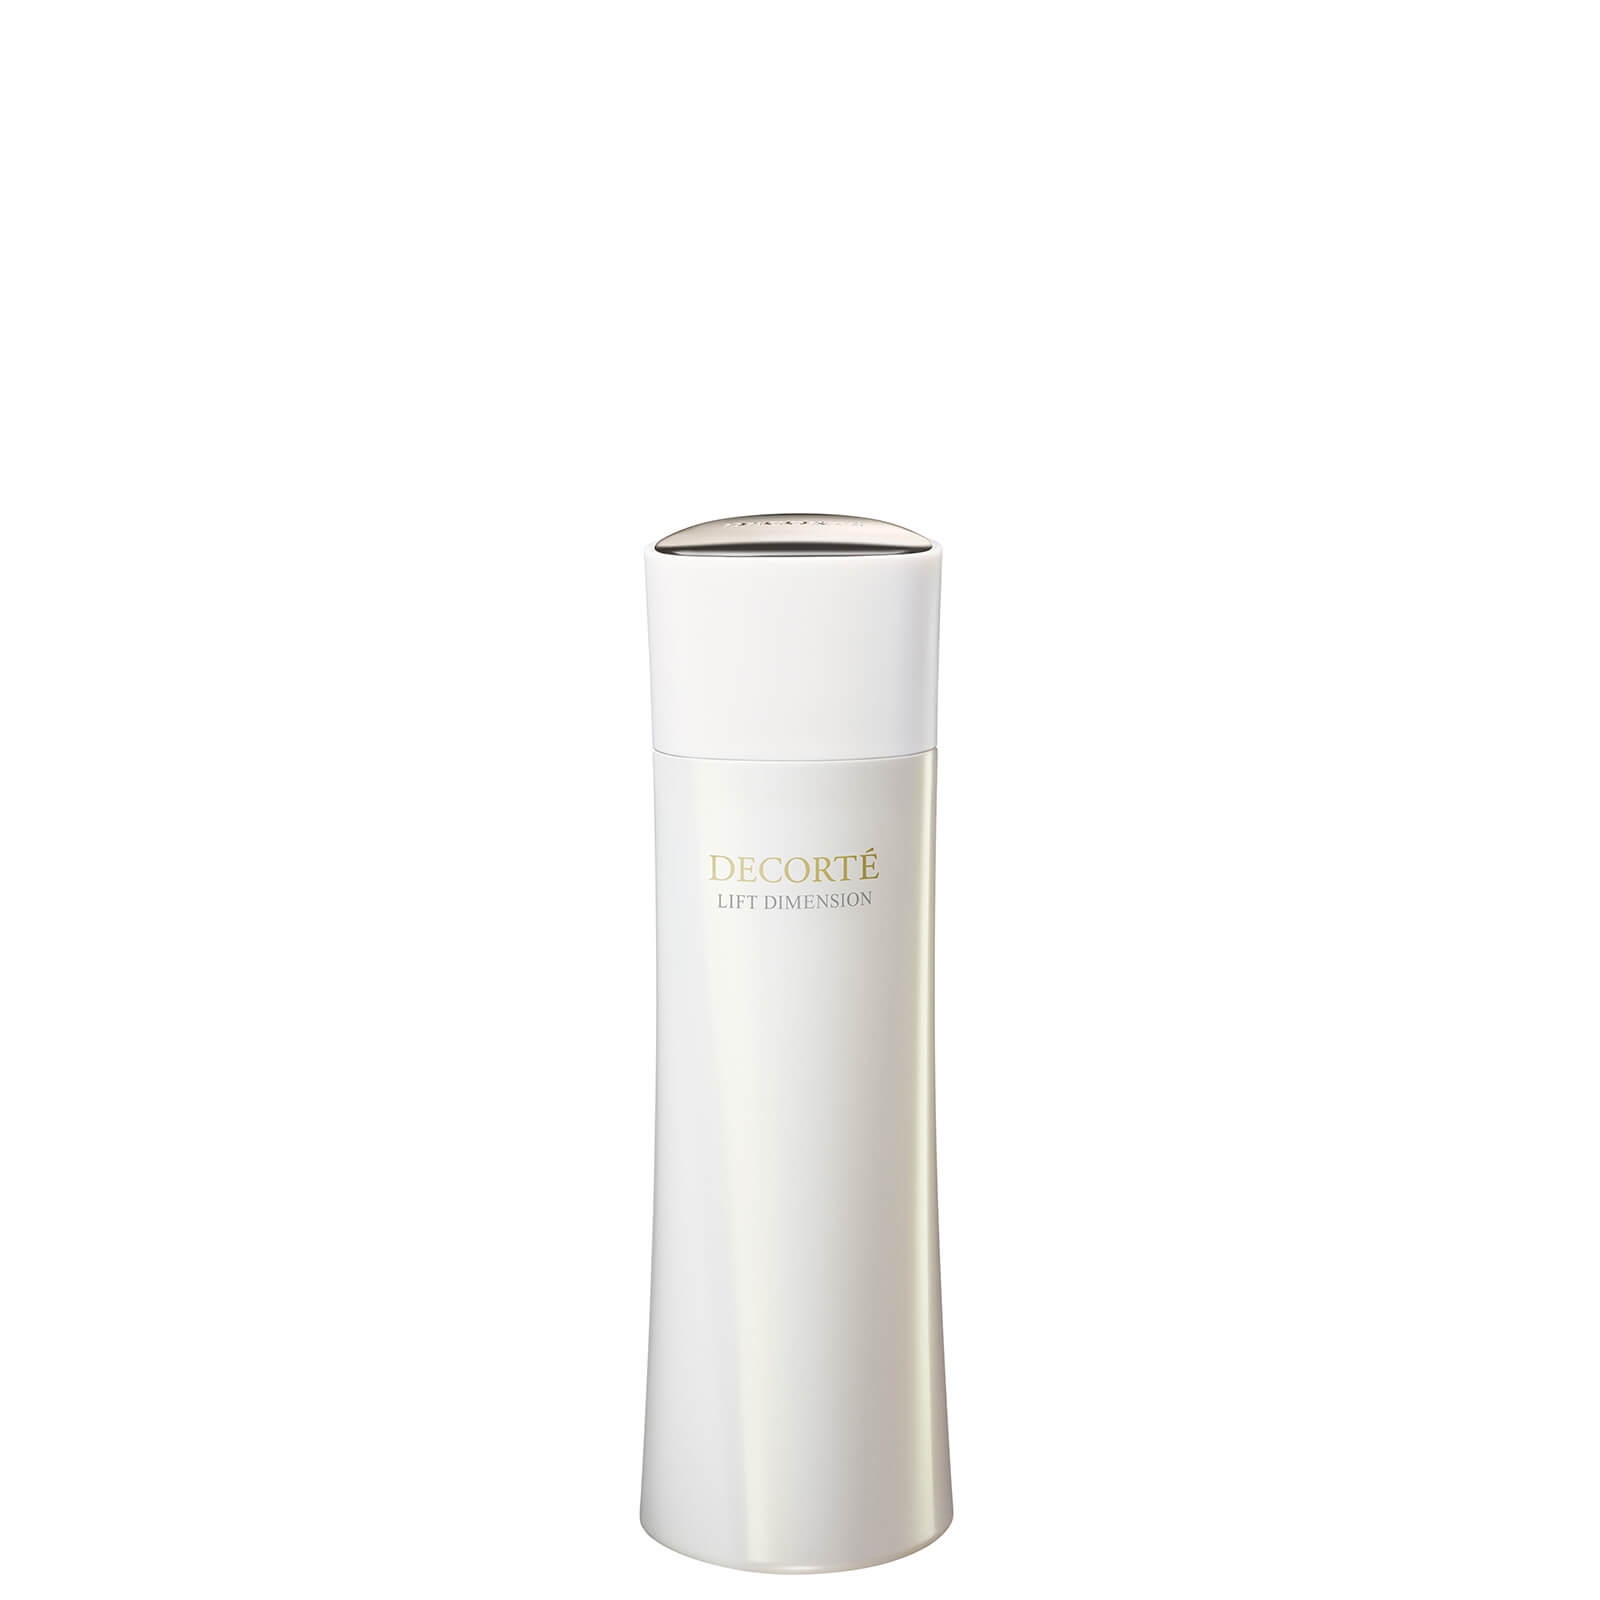 Decorté Replenish And Firm Extra Rich Lotion 200ml